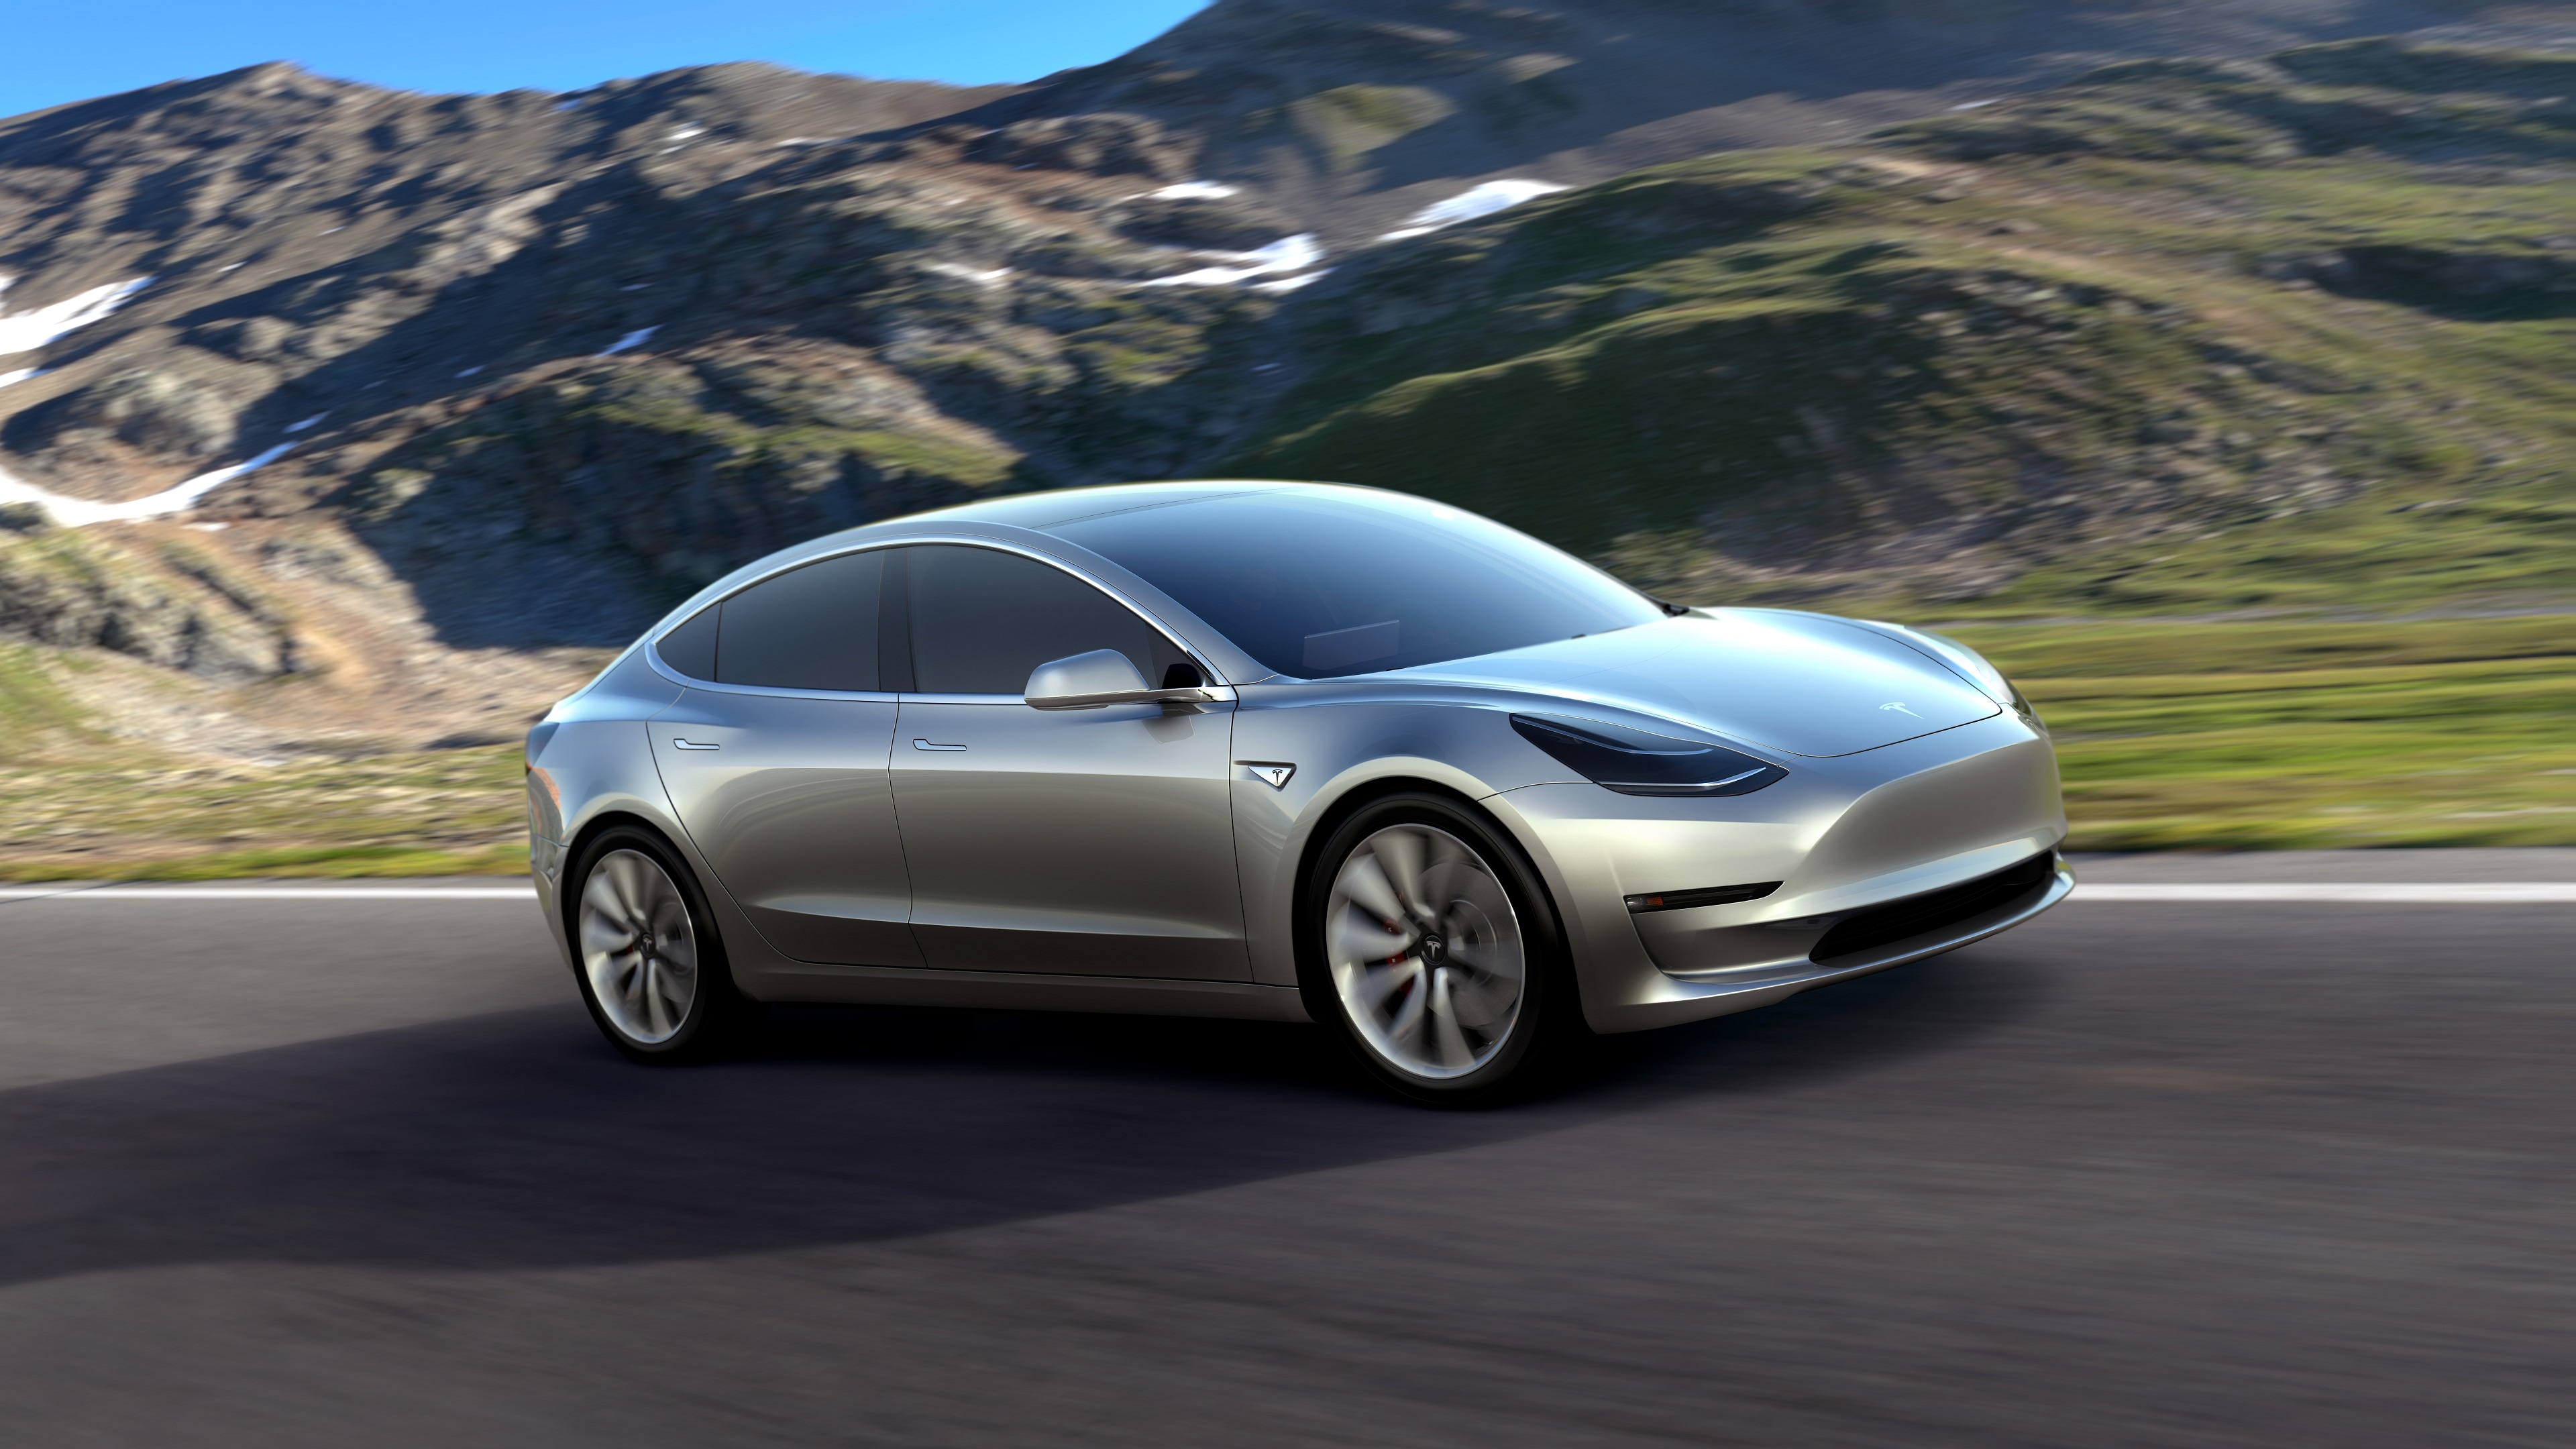 4k tesla model 3 wallpaper 66050